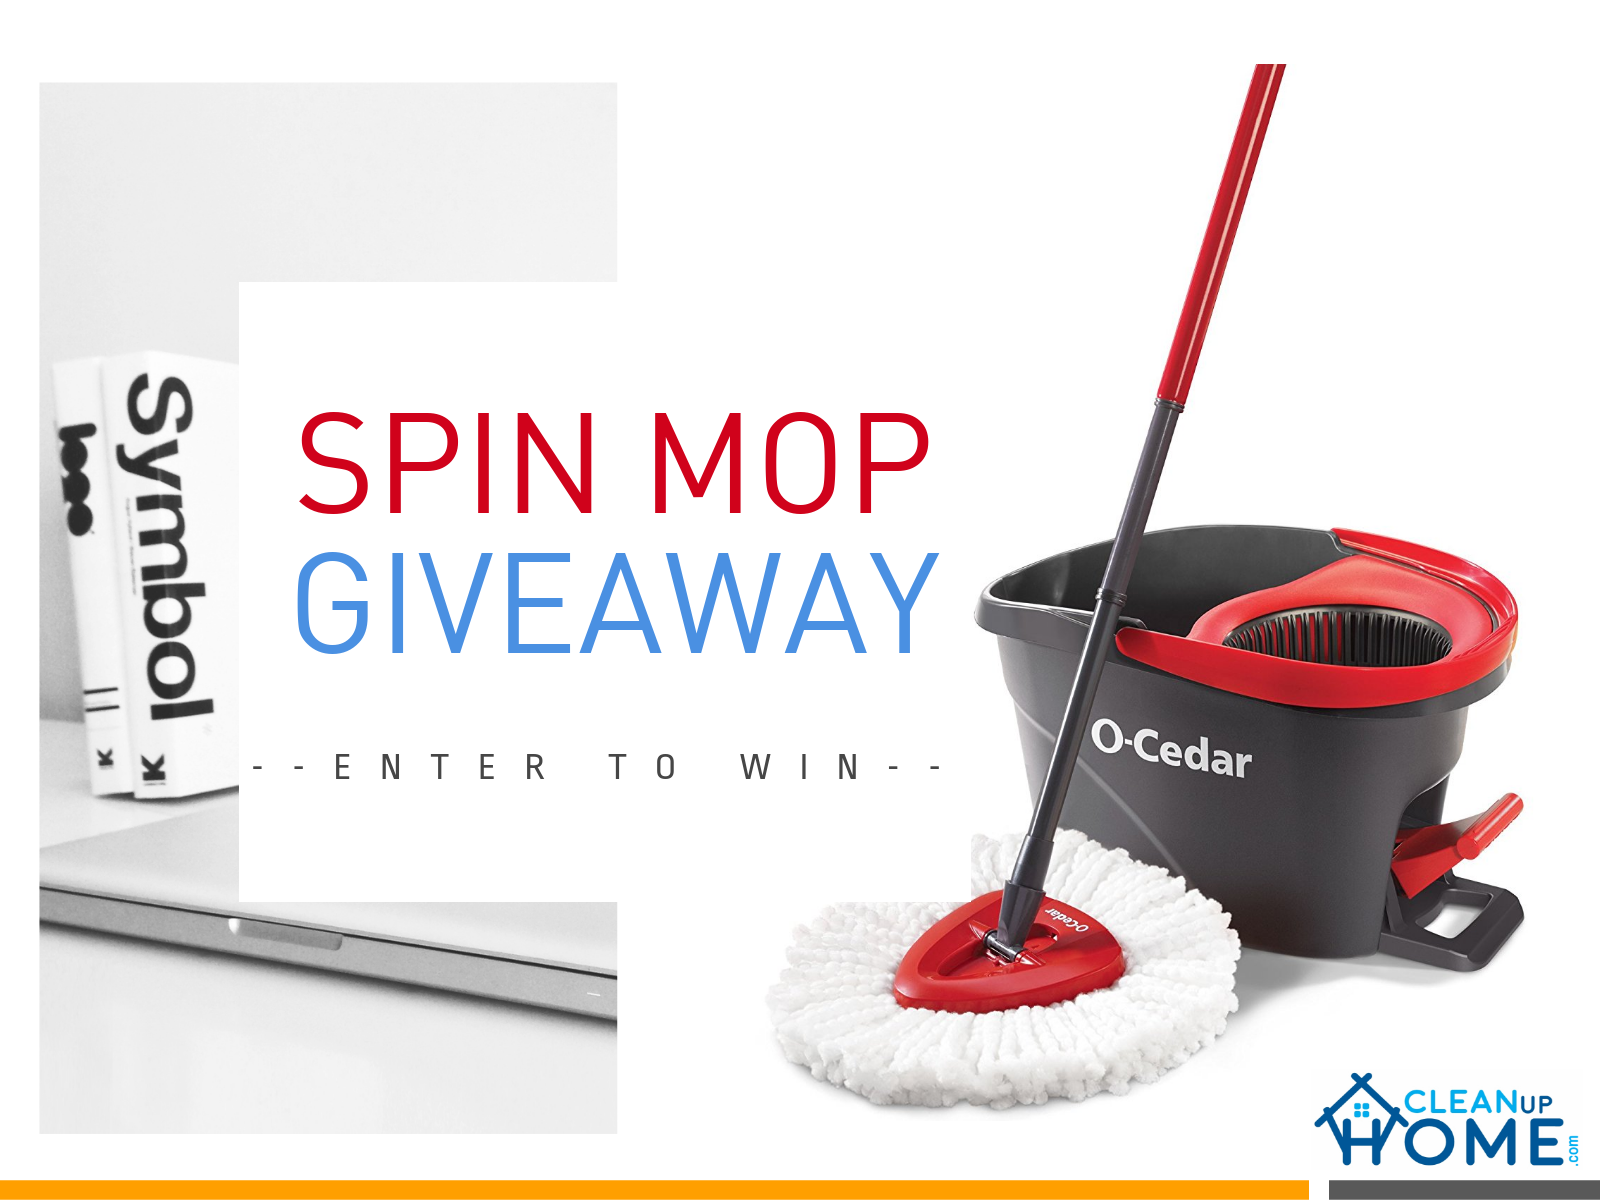 Giveaways of Spin Mop O-Cedar